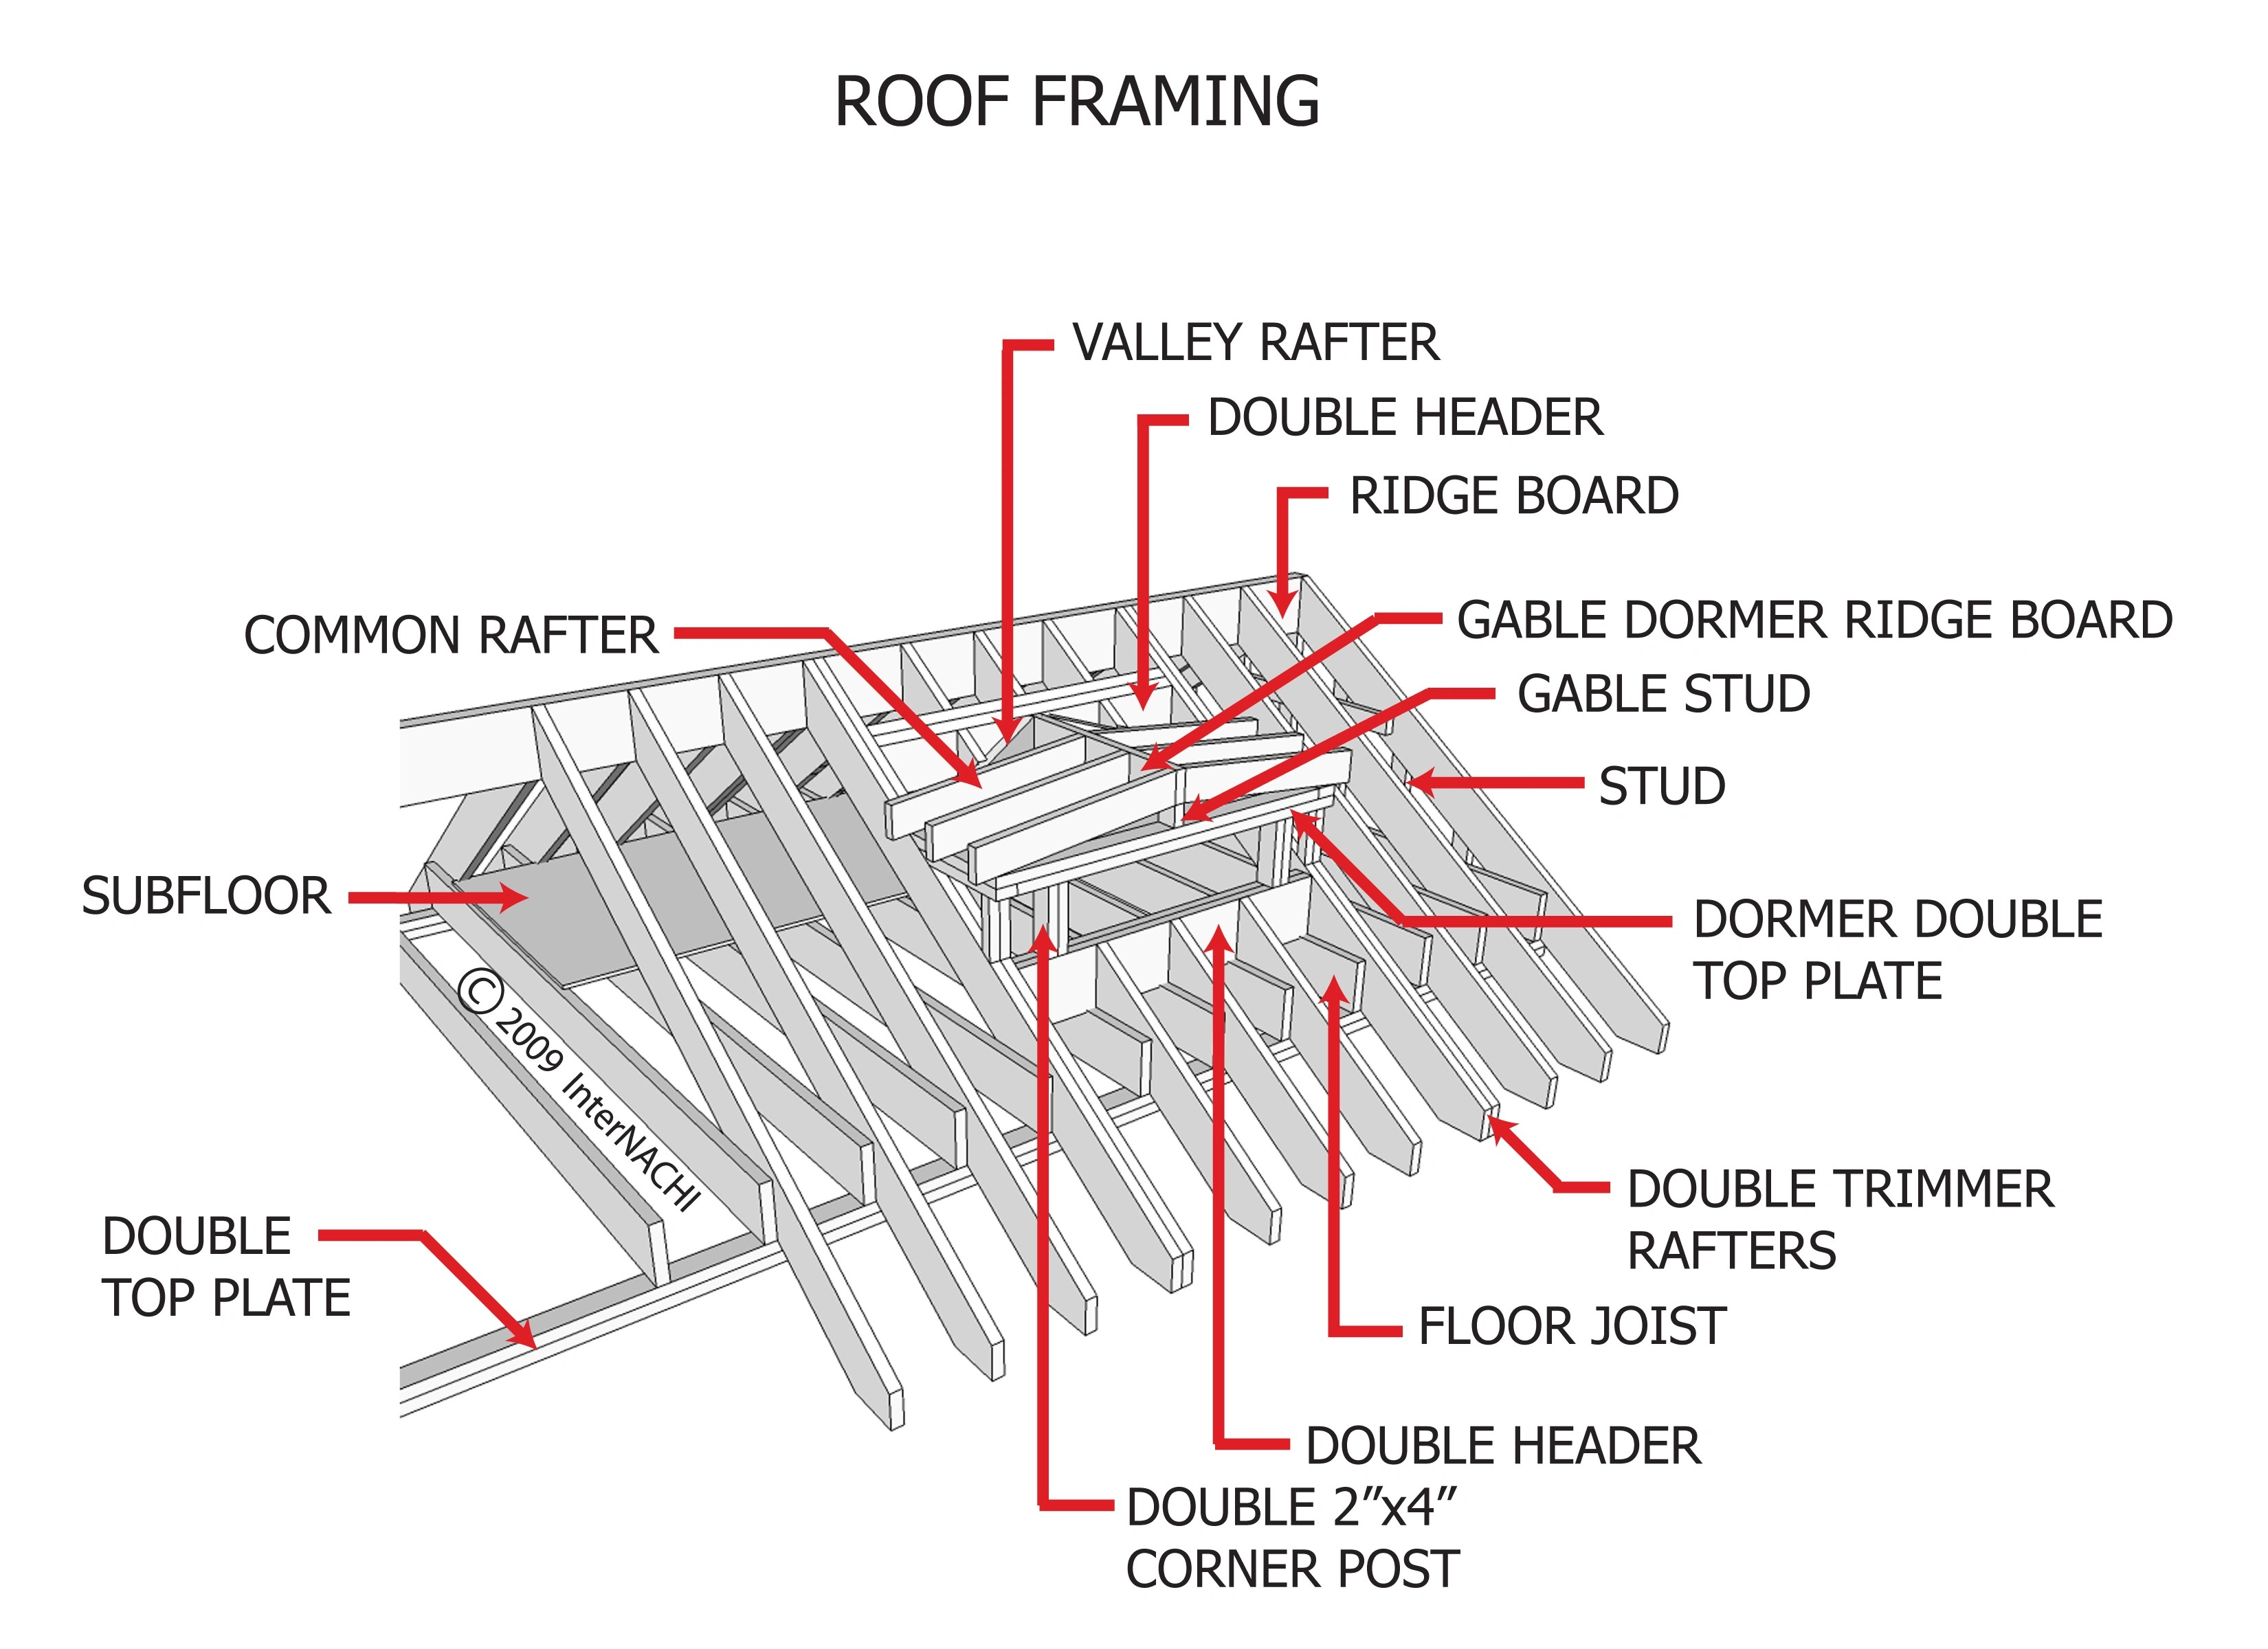 roofing terms diagram understanding car wiring diagrams index of gallery images framing